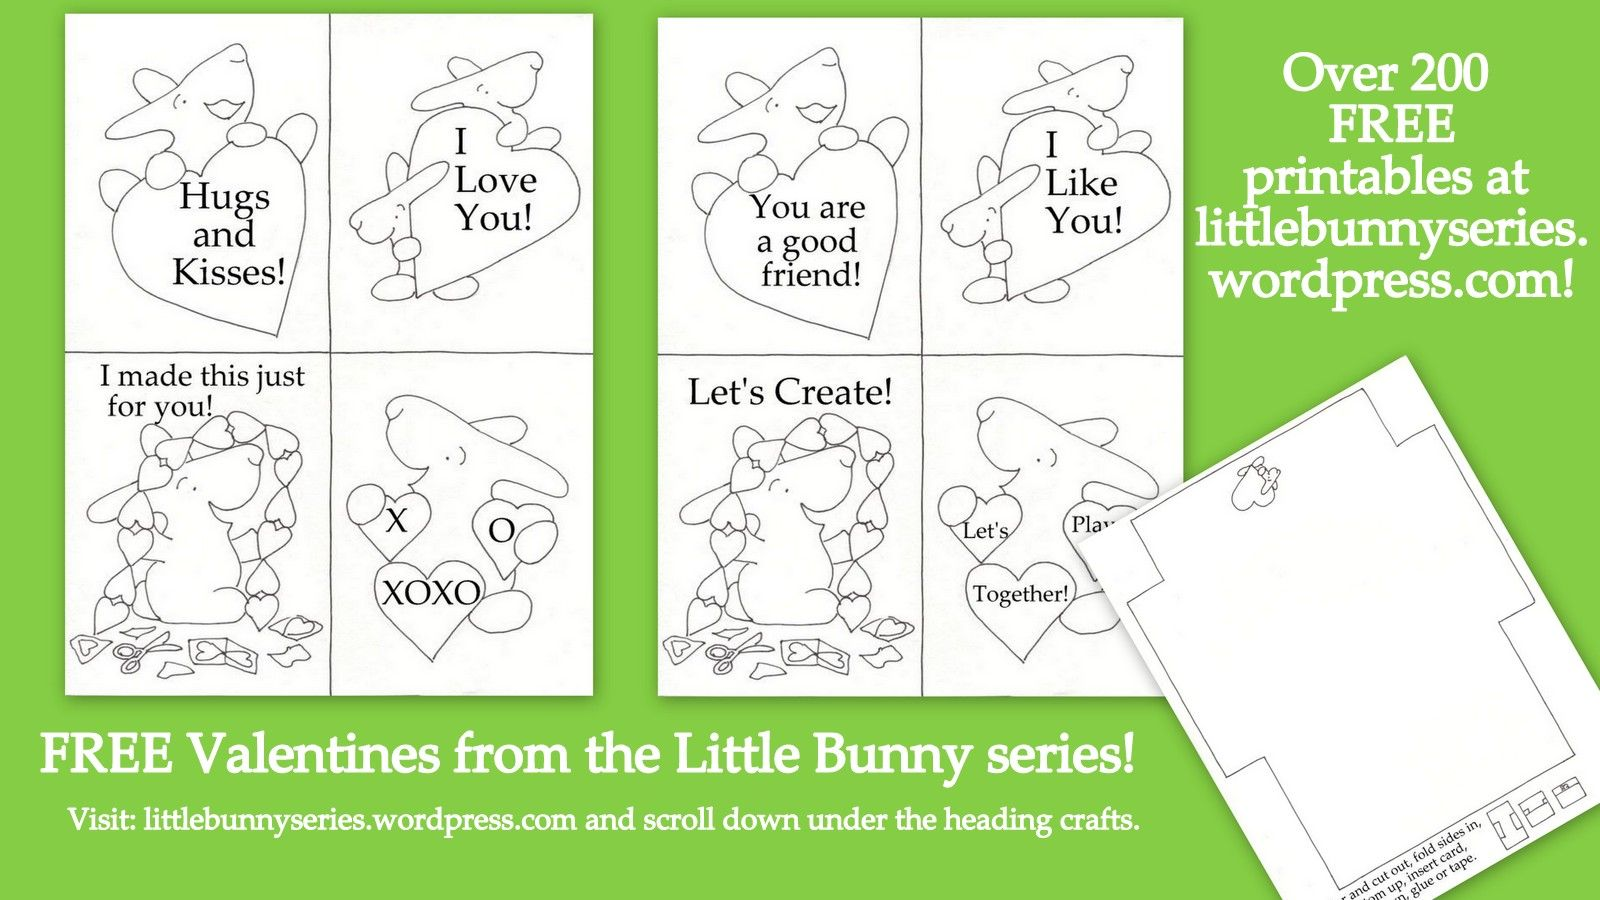 Free Valentines At Littlebunnyseries Wordpress Just